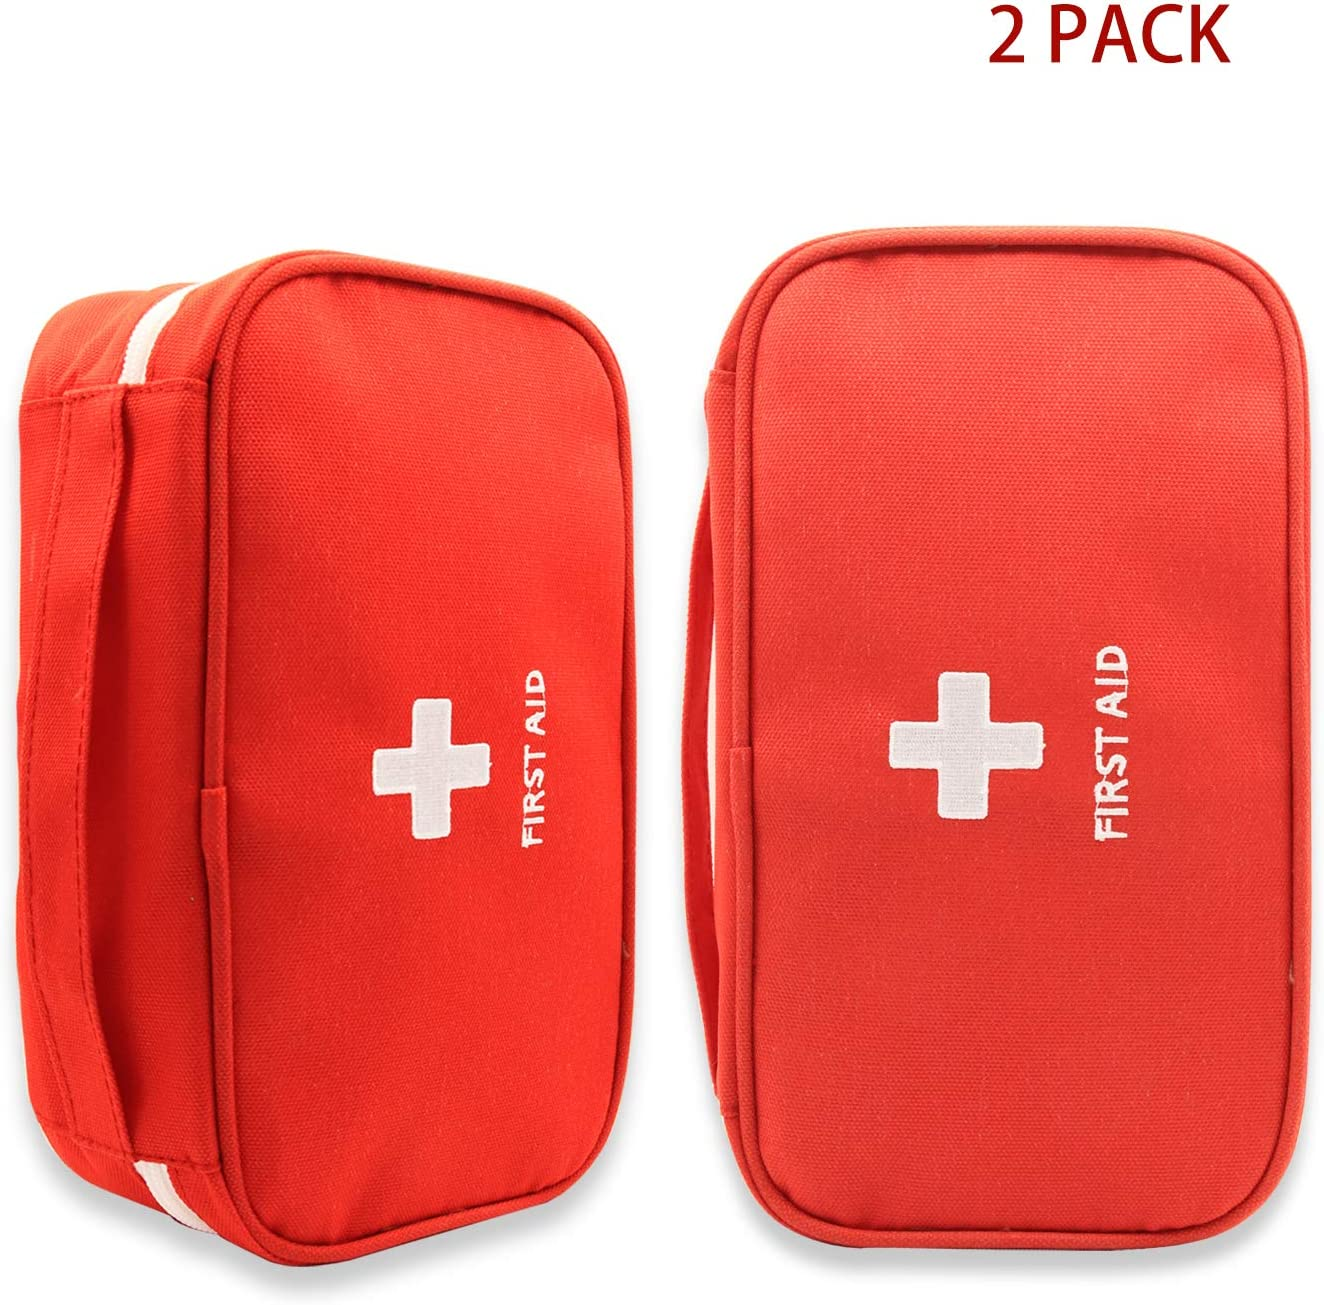 Portable First Aid Empty Kit Pouch Tote Small First Responder Storage Bag Compact Emergency Survival Bag Medicine Bag for Home Office Travel Camping Sport Backpacking Hiking Cycling Outdoor,RED